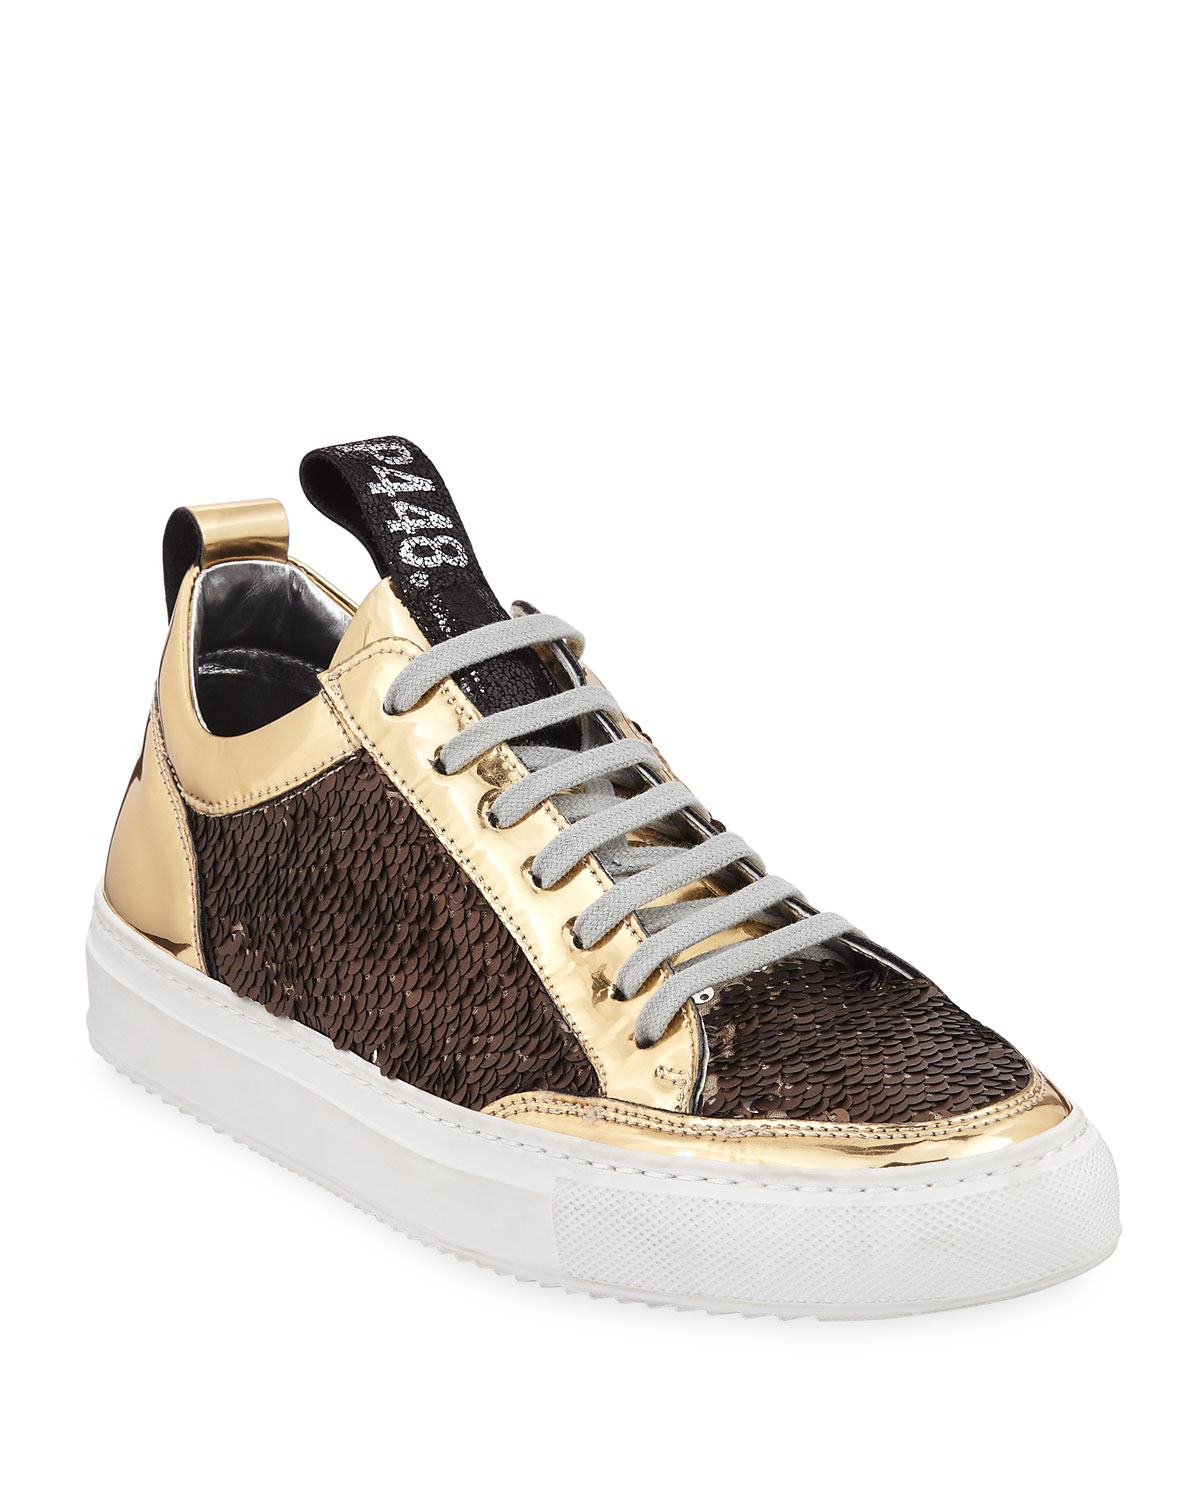 P448 WOMEN'S A8 SOHO PATENT LEATHER & SEQUIN LACE UP SNEAKERS